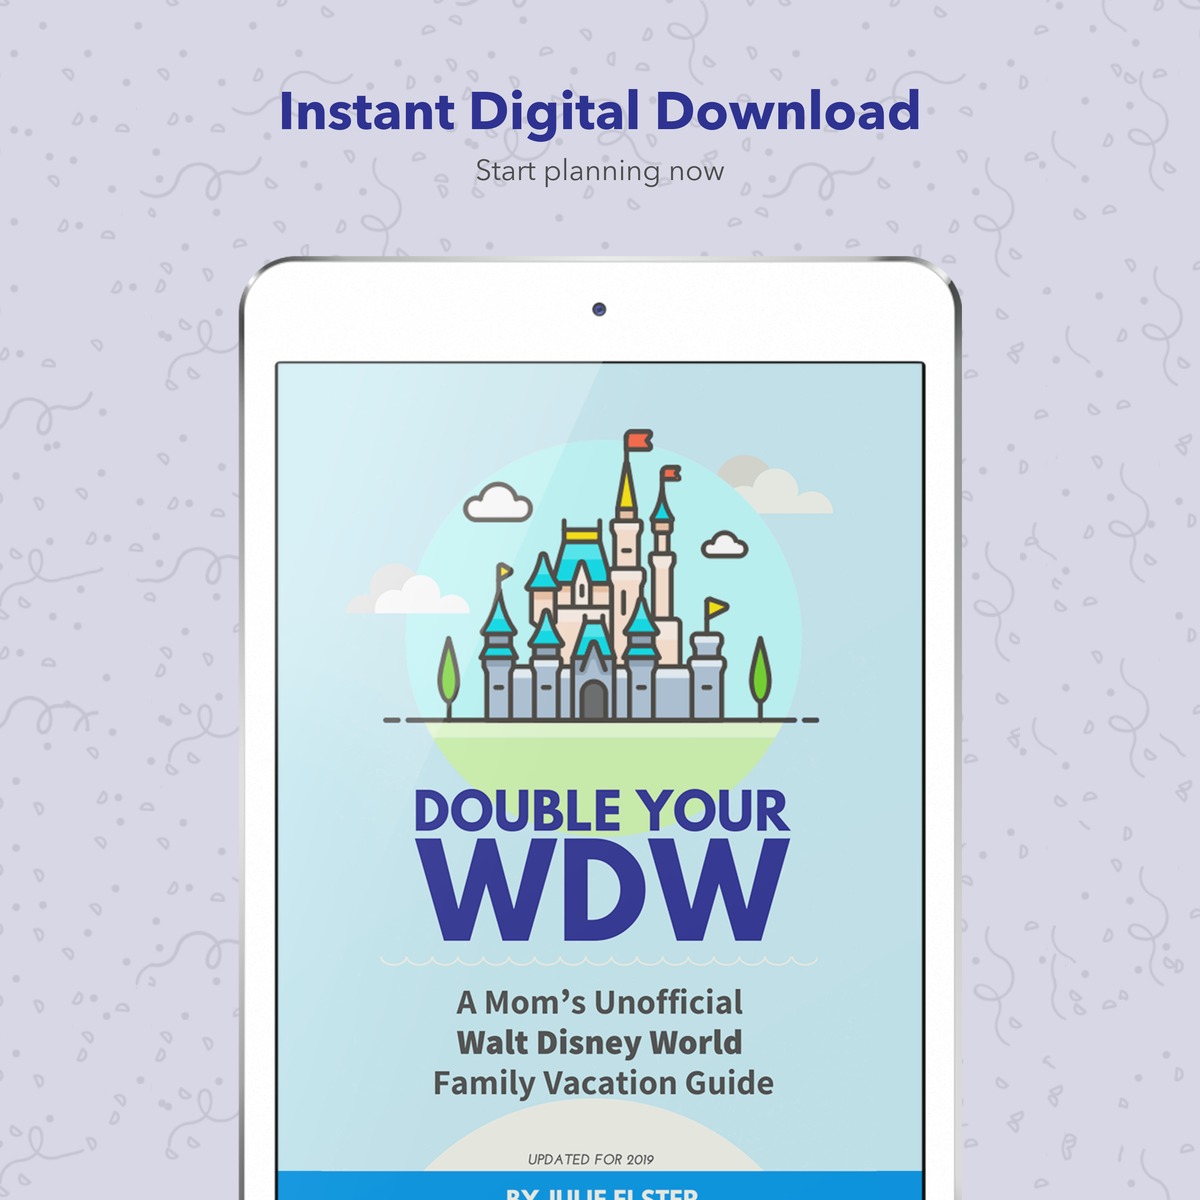 Double your dating ebook review site